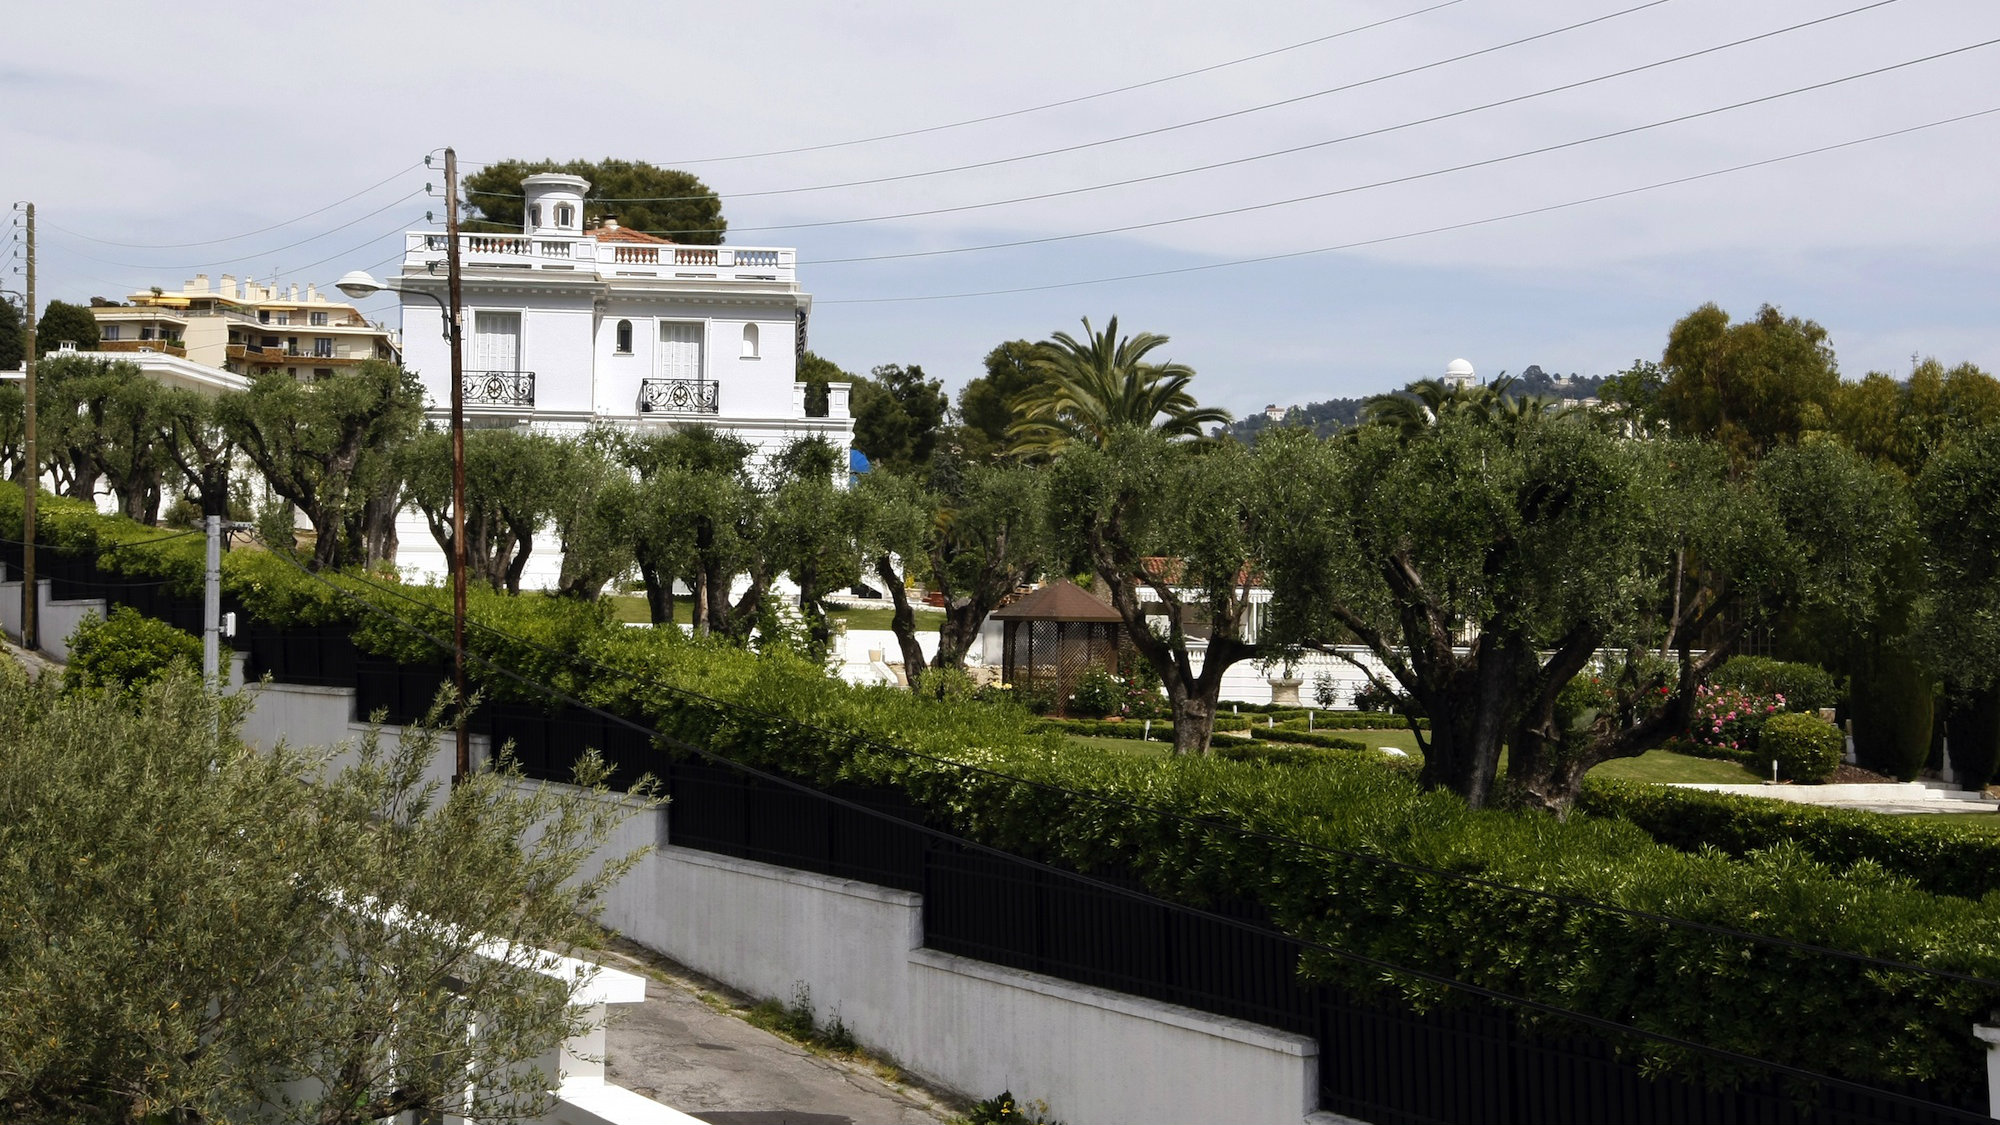 Property in Nice, France registered to former Gabon president Omar Bongo in 2009.